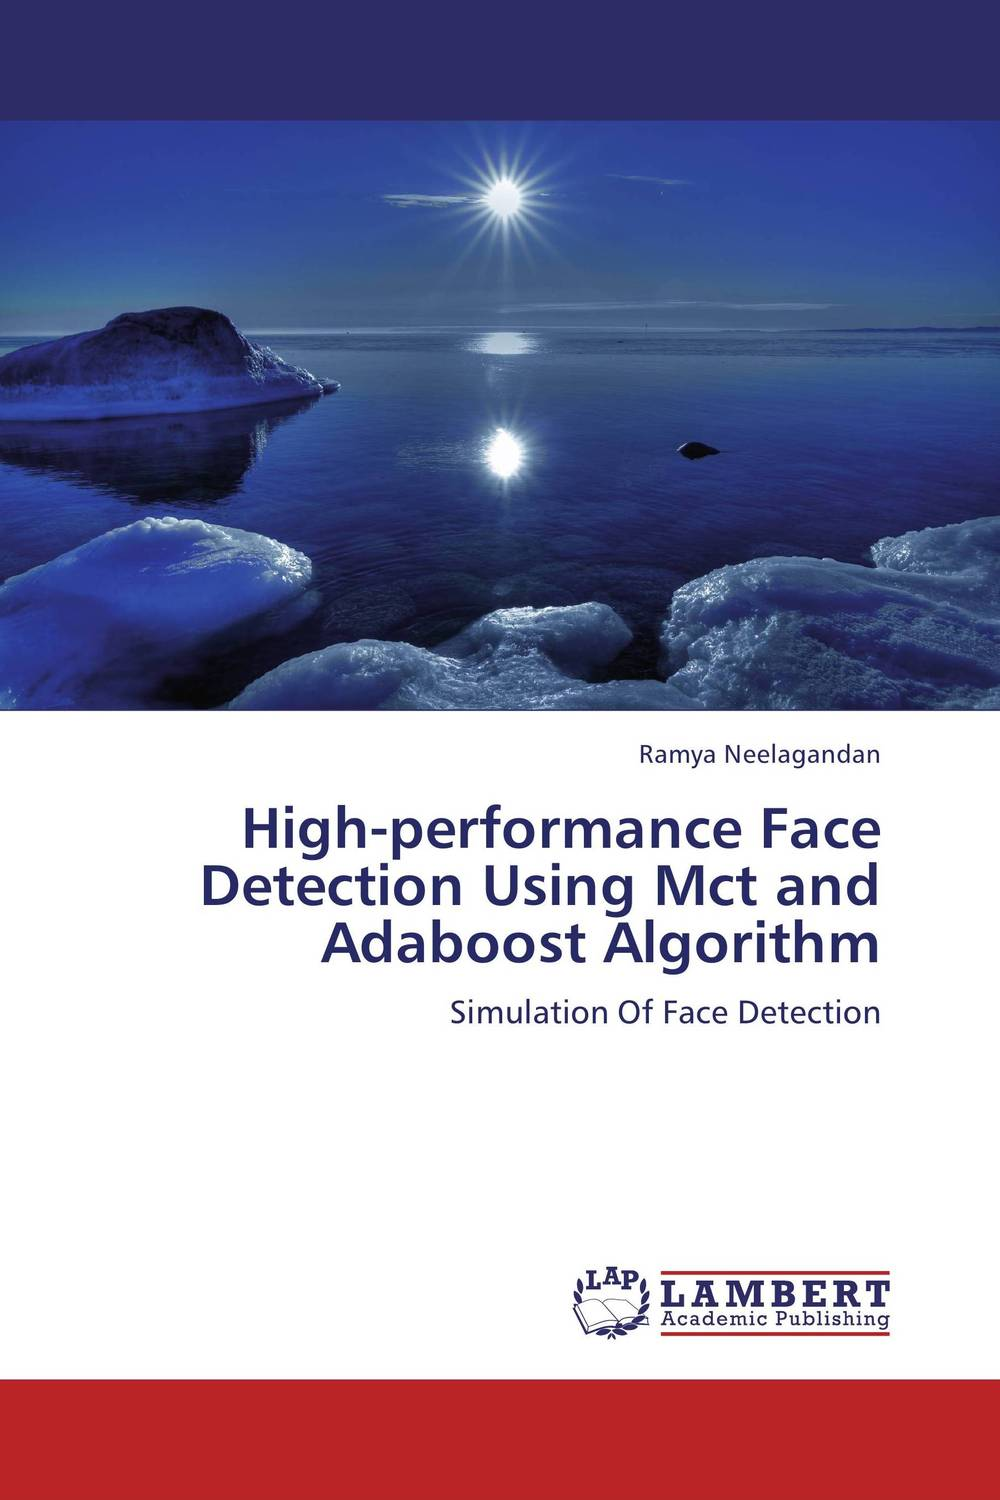 High-performance Face Detection Using Mct and Adaboost Algorithm ahmed omar abdallah tarek moustafa mahmoud and tarek abd el hafeez abd el rahman filtering pornography based on face detection and content analysis